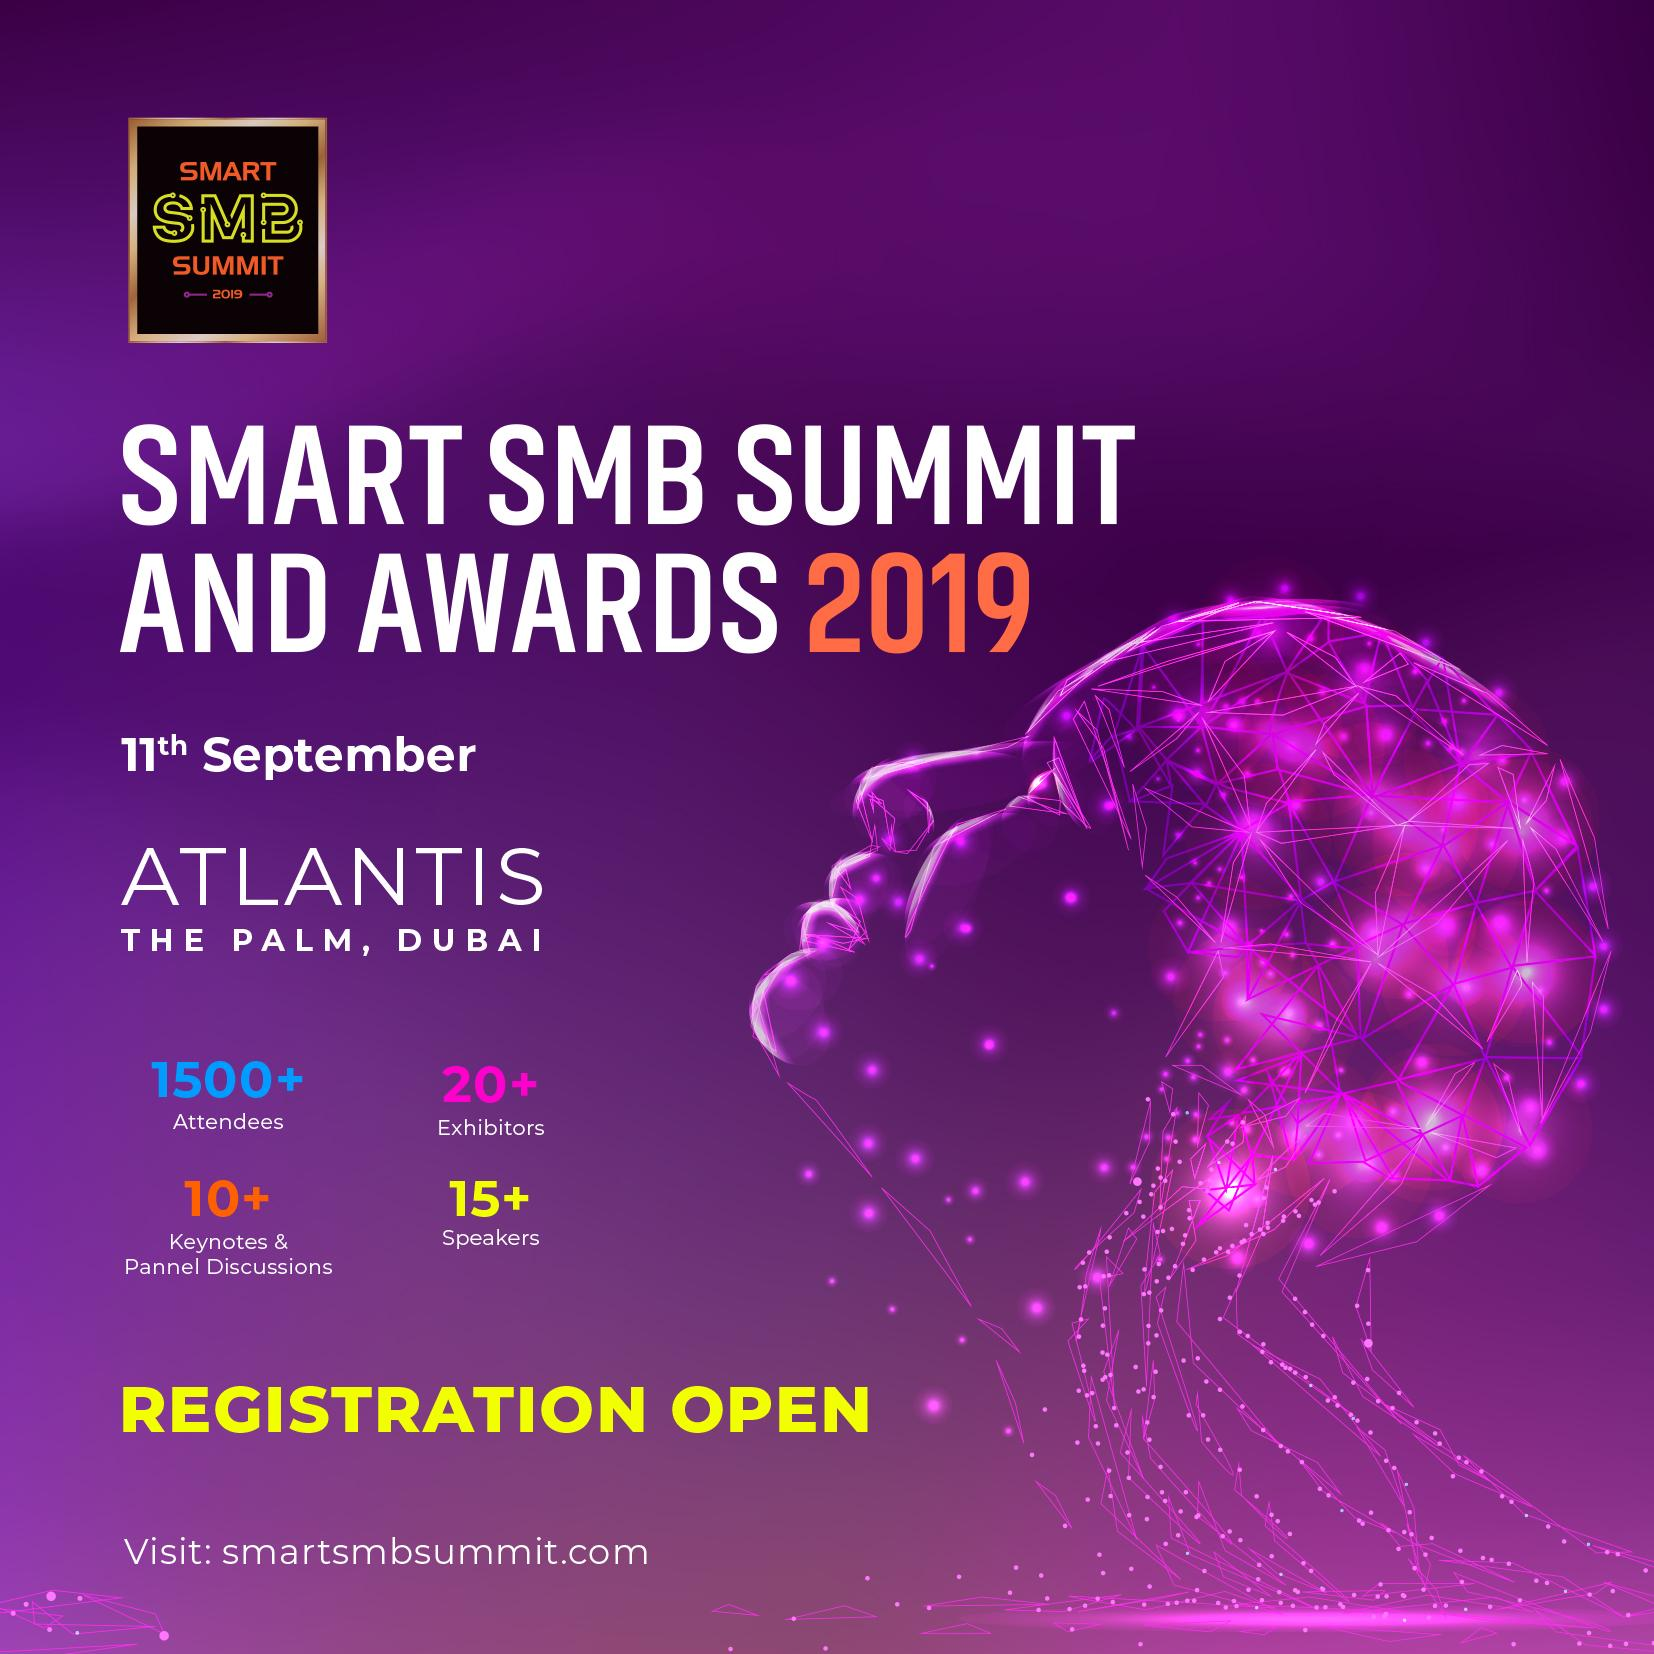 Smart SMB Summit & Awards Dubai 2019